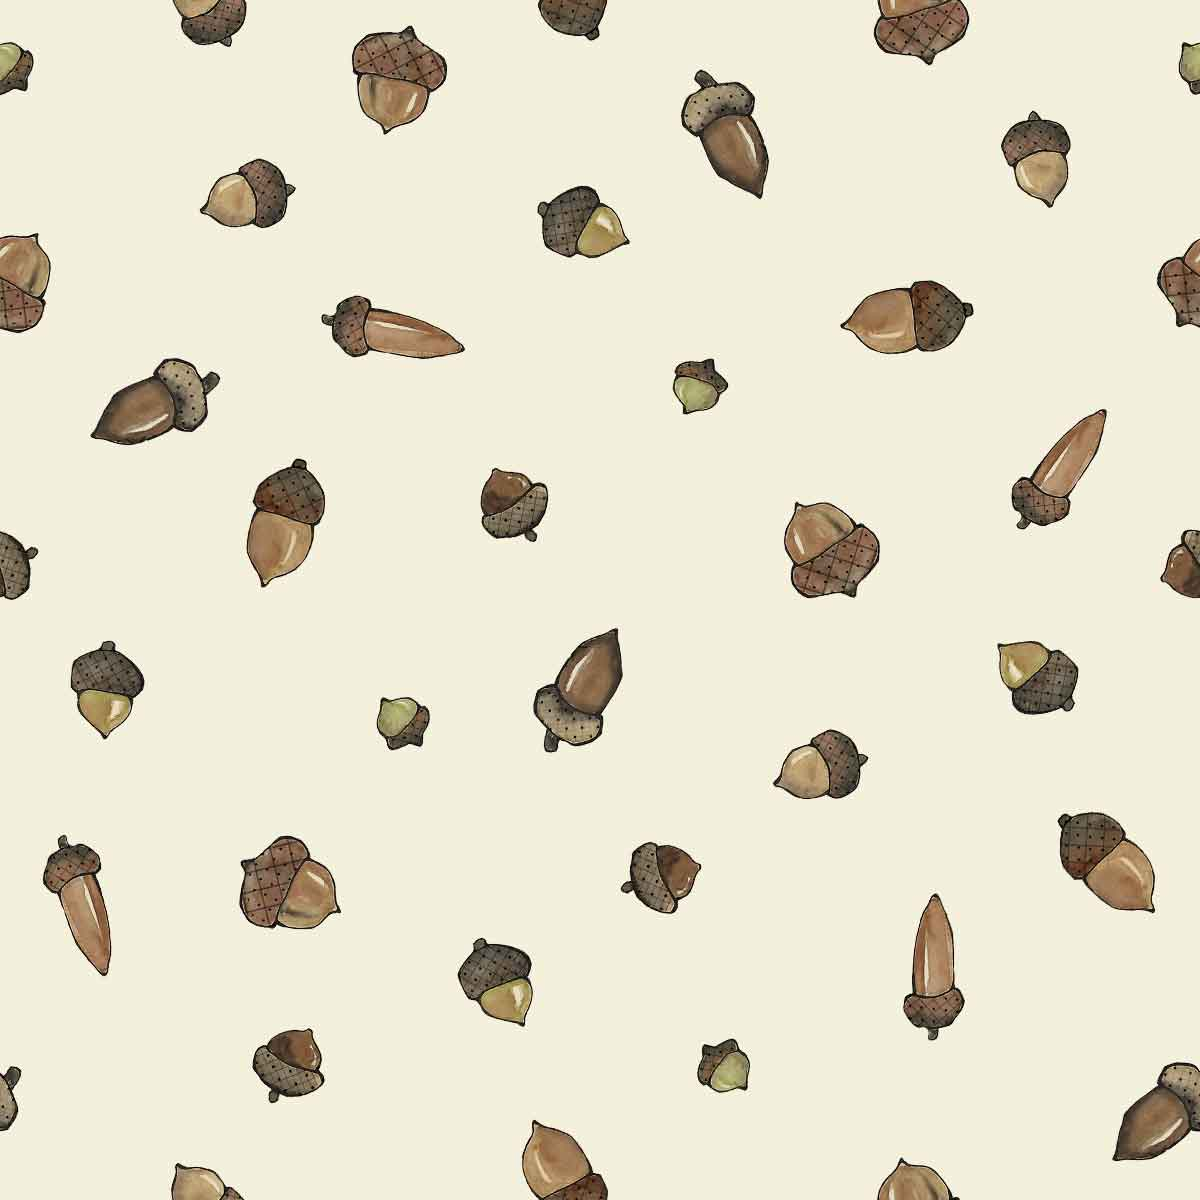 CA-Autumn-ALL-acorns-pattern.jpg